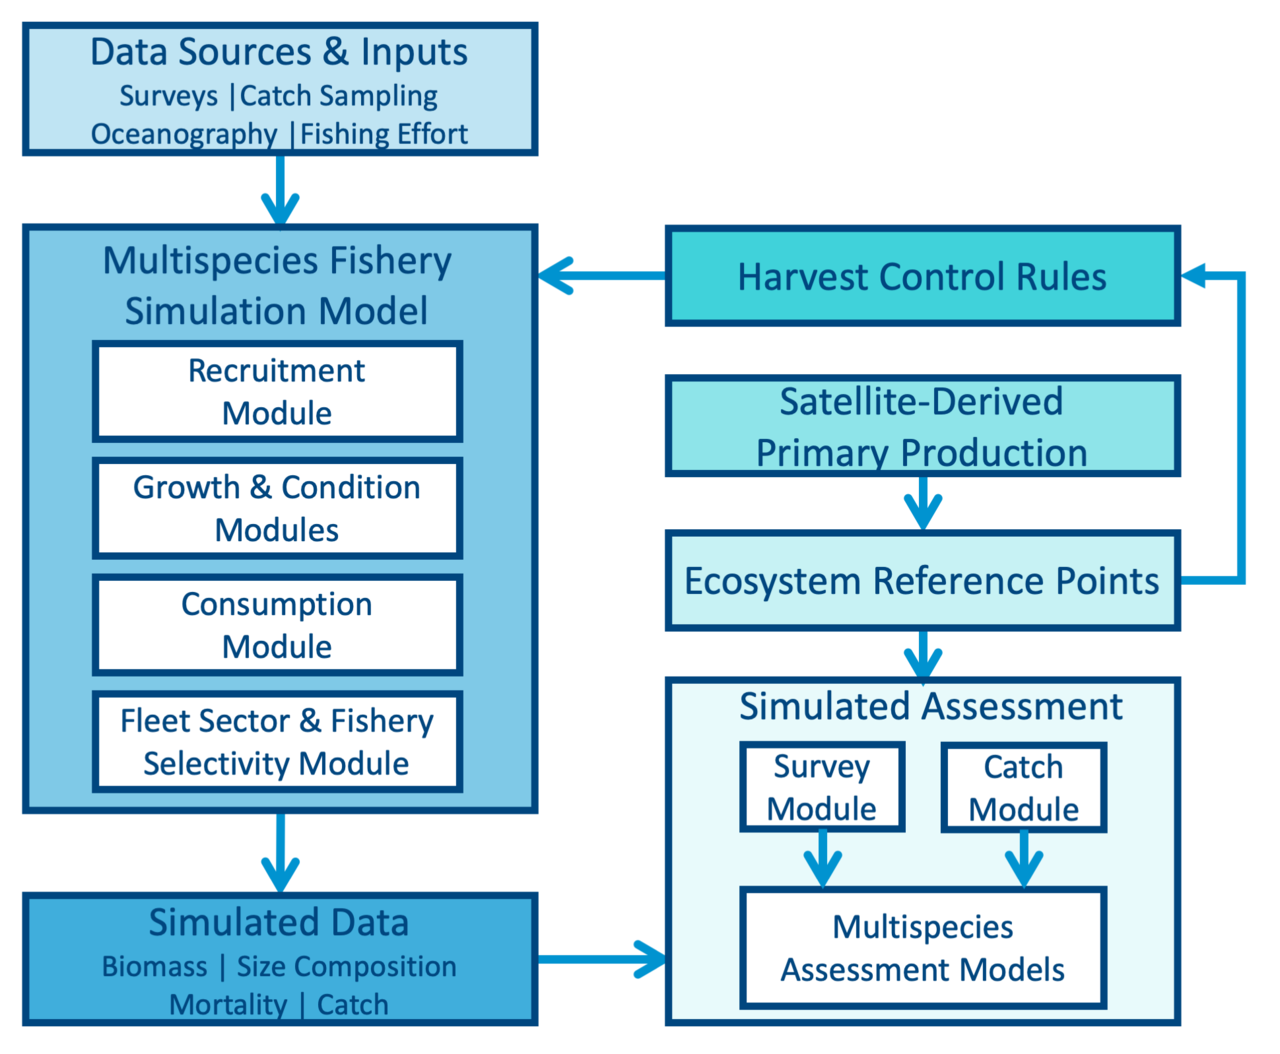 A flowchart showing data inputs to the simulation model, simulated data generated and input to the simulated management module, and outputting ecosystem reference points (also informed by satellite derived primary production). Multispecies status relative to reference points is fed into a harvest control rule, which determines how much simulated catch to take from the simulation model in the next year. Then the process repeats.